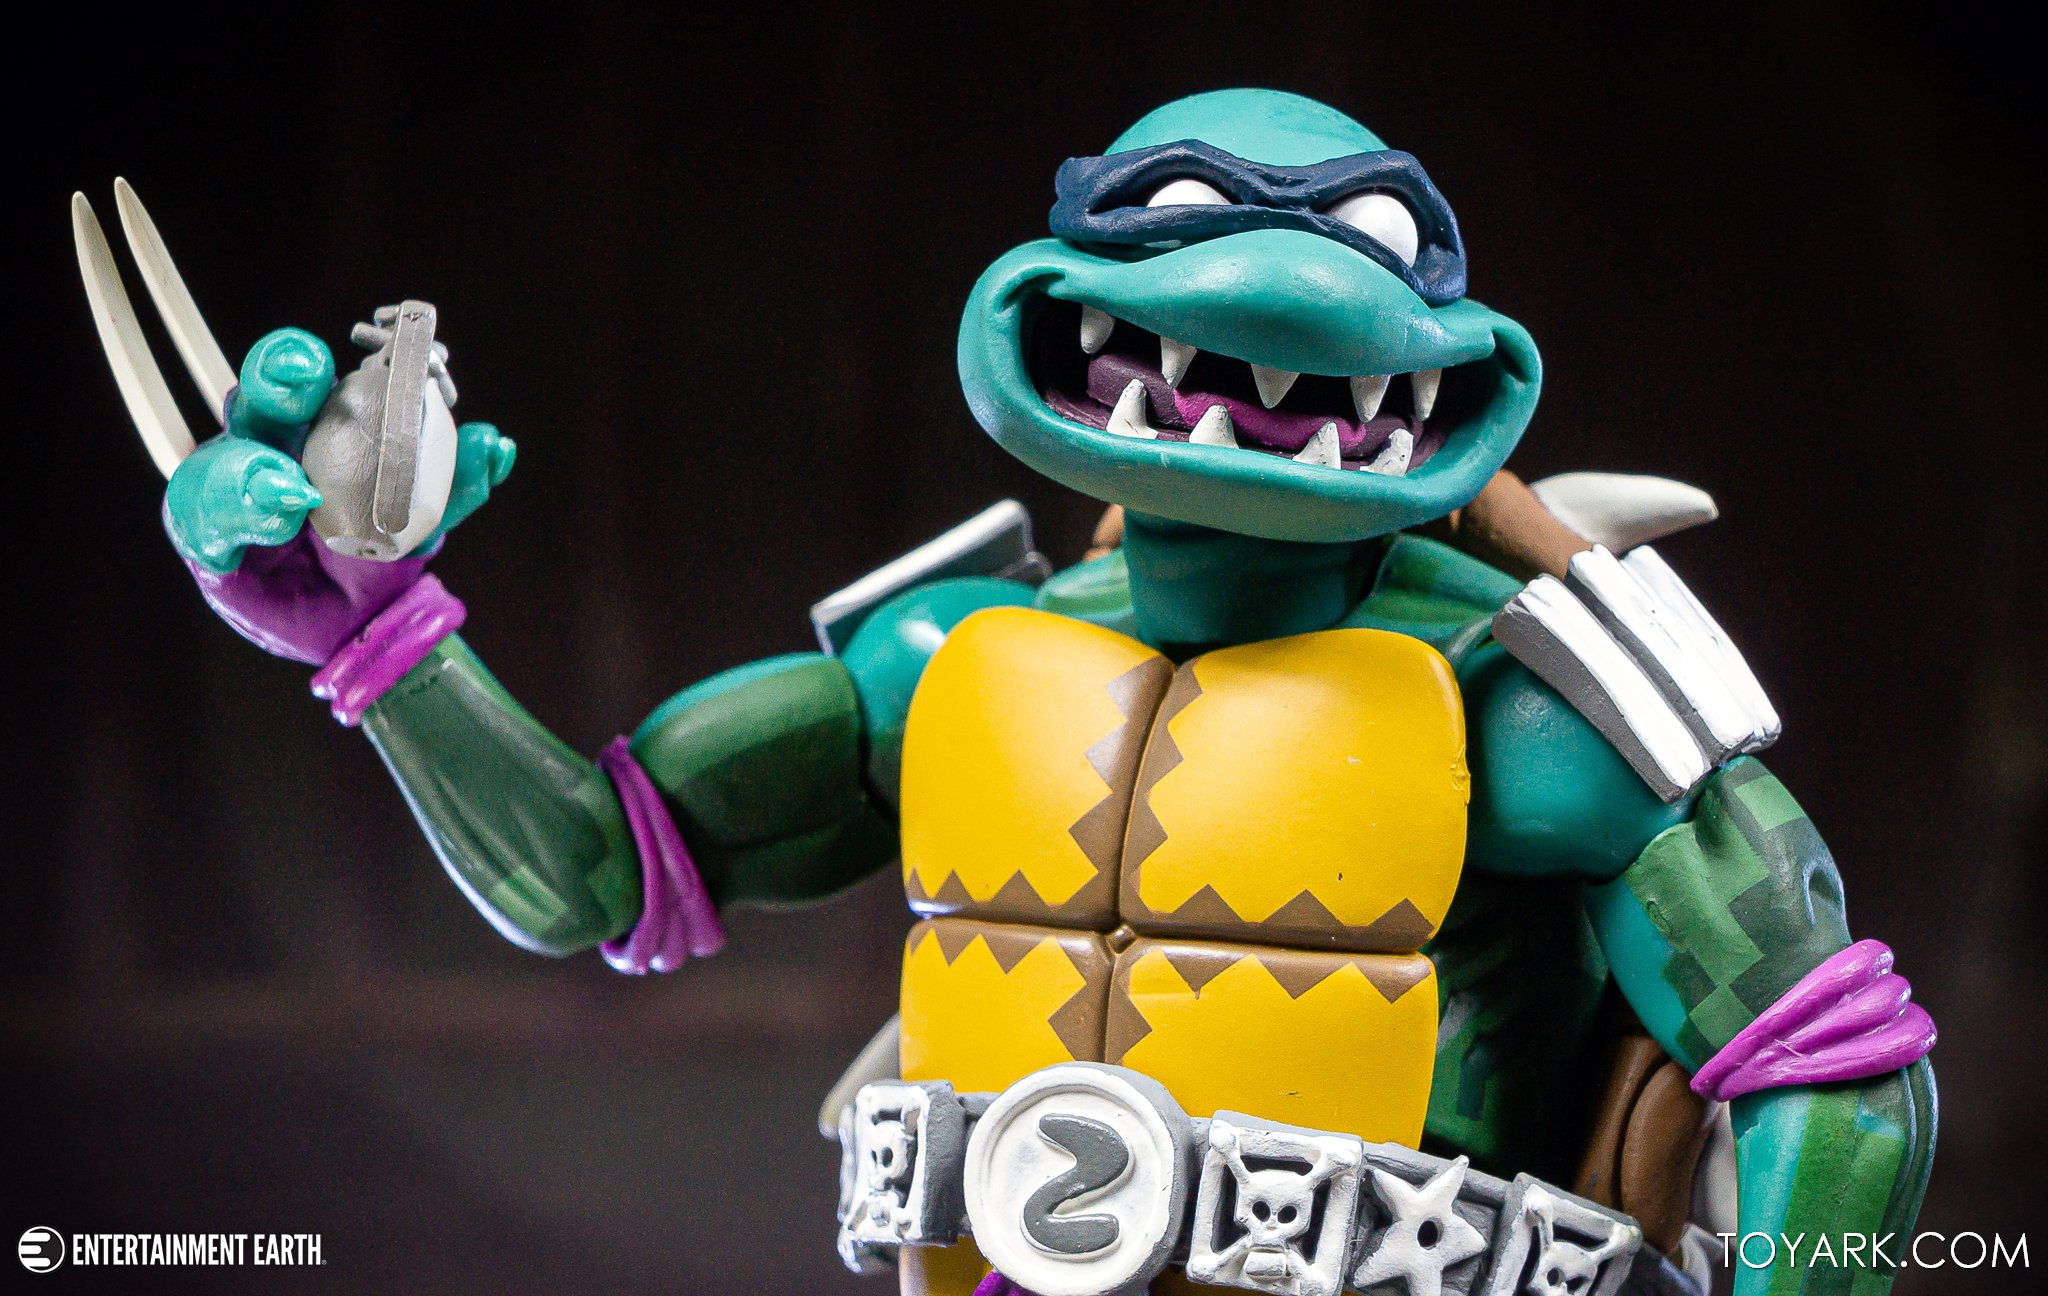 https://news.toyark.com/wp-content/uploads/sites/4/2020/06/NECA-TMNT-Turtles-In-Time-S1-053.jpg